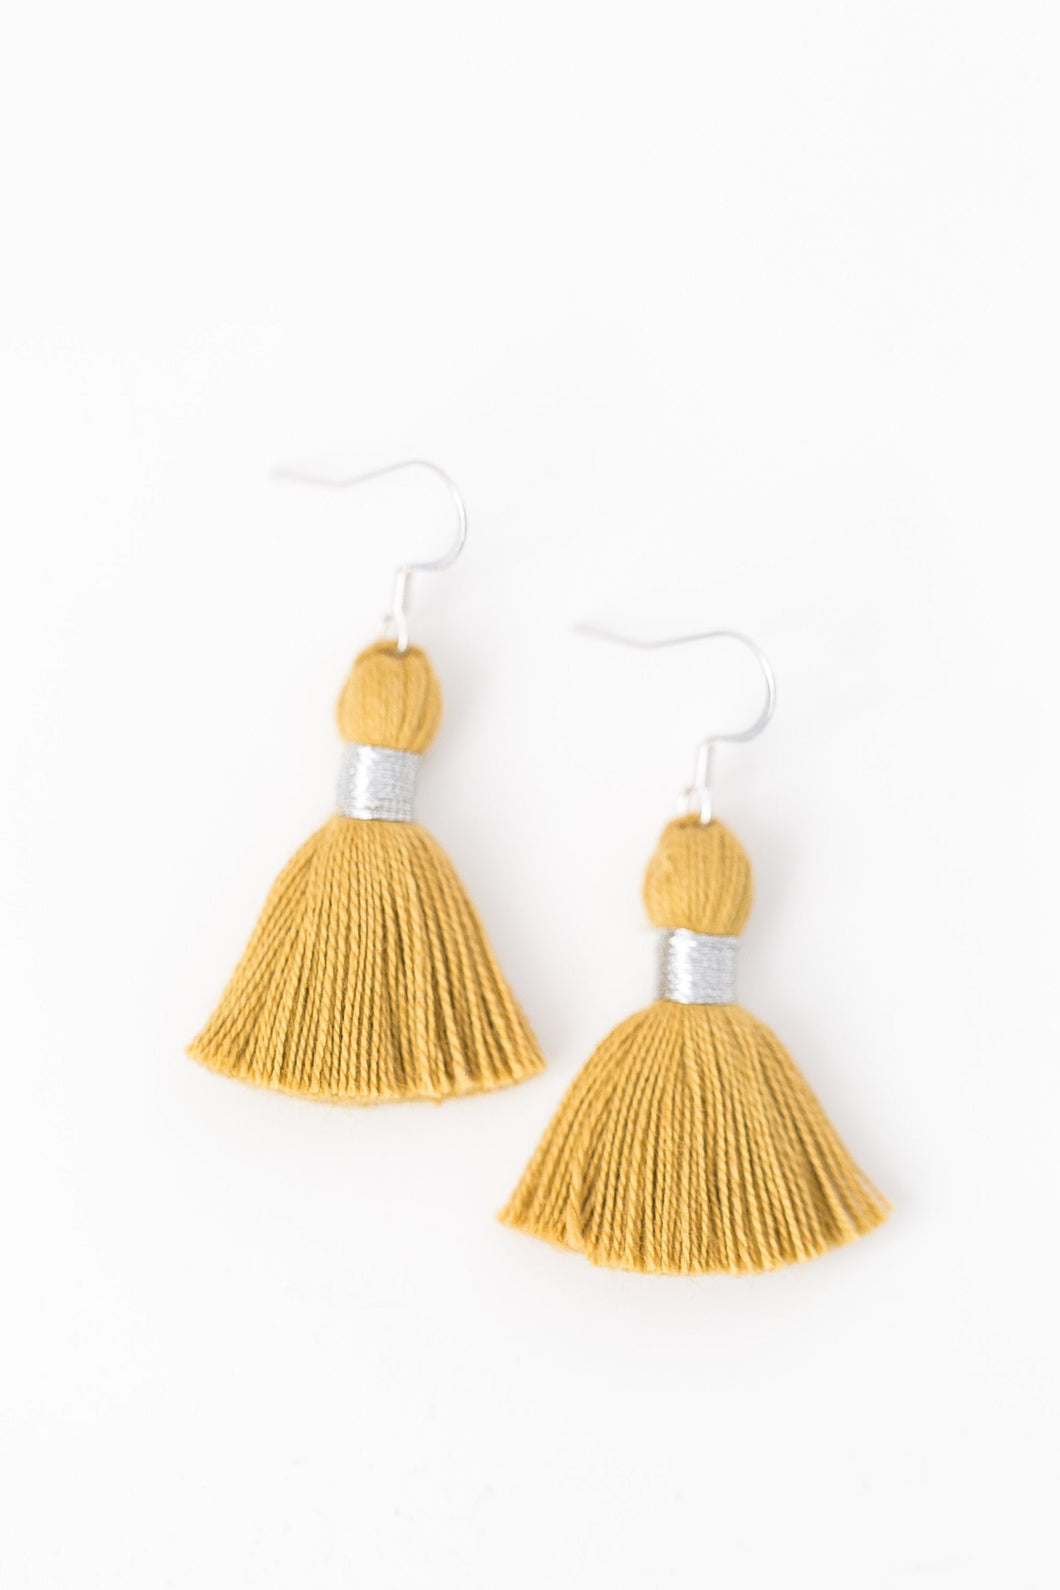 "THE AVERY SILVER 1-1/4"" gold tassel earrings"